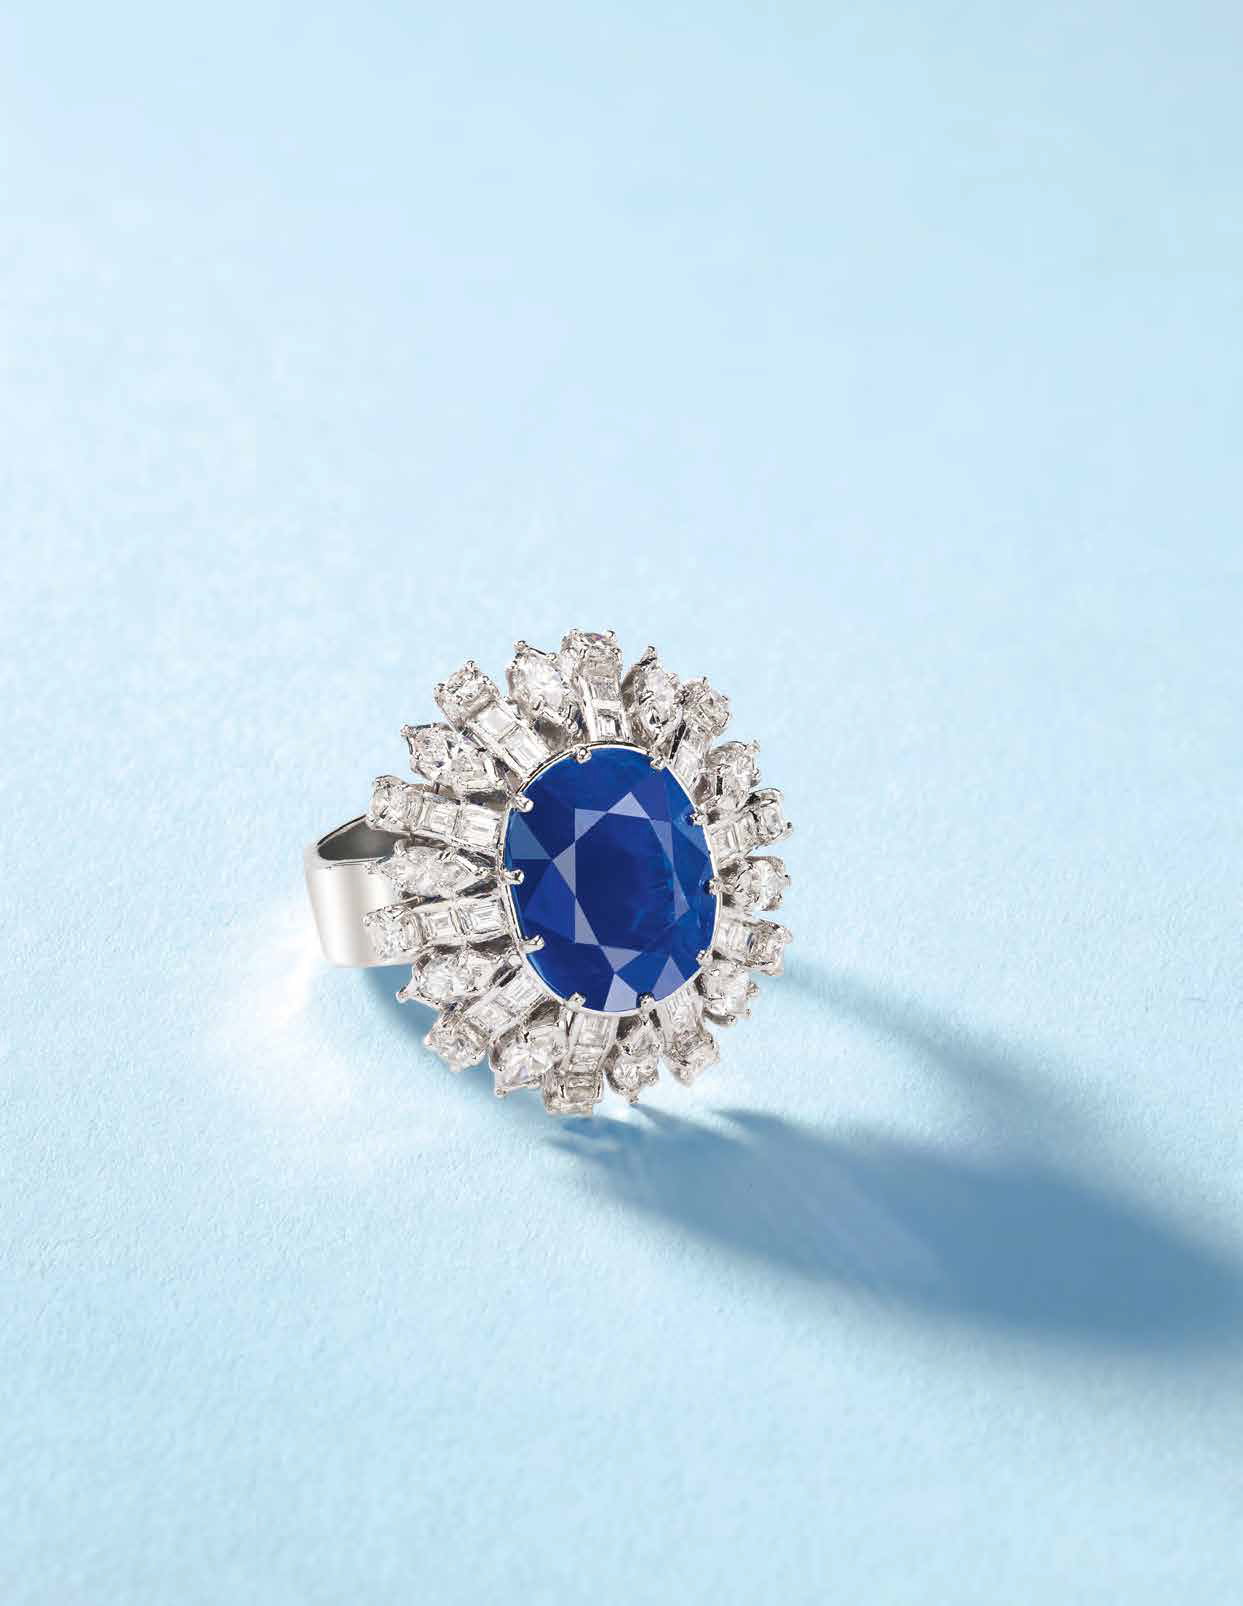 96b50559e508a Discovered Kashmir Sapphire Leads Bonhams Jewellery Sale in Hong ...